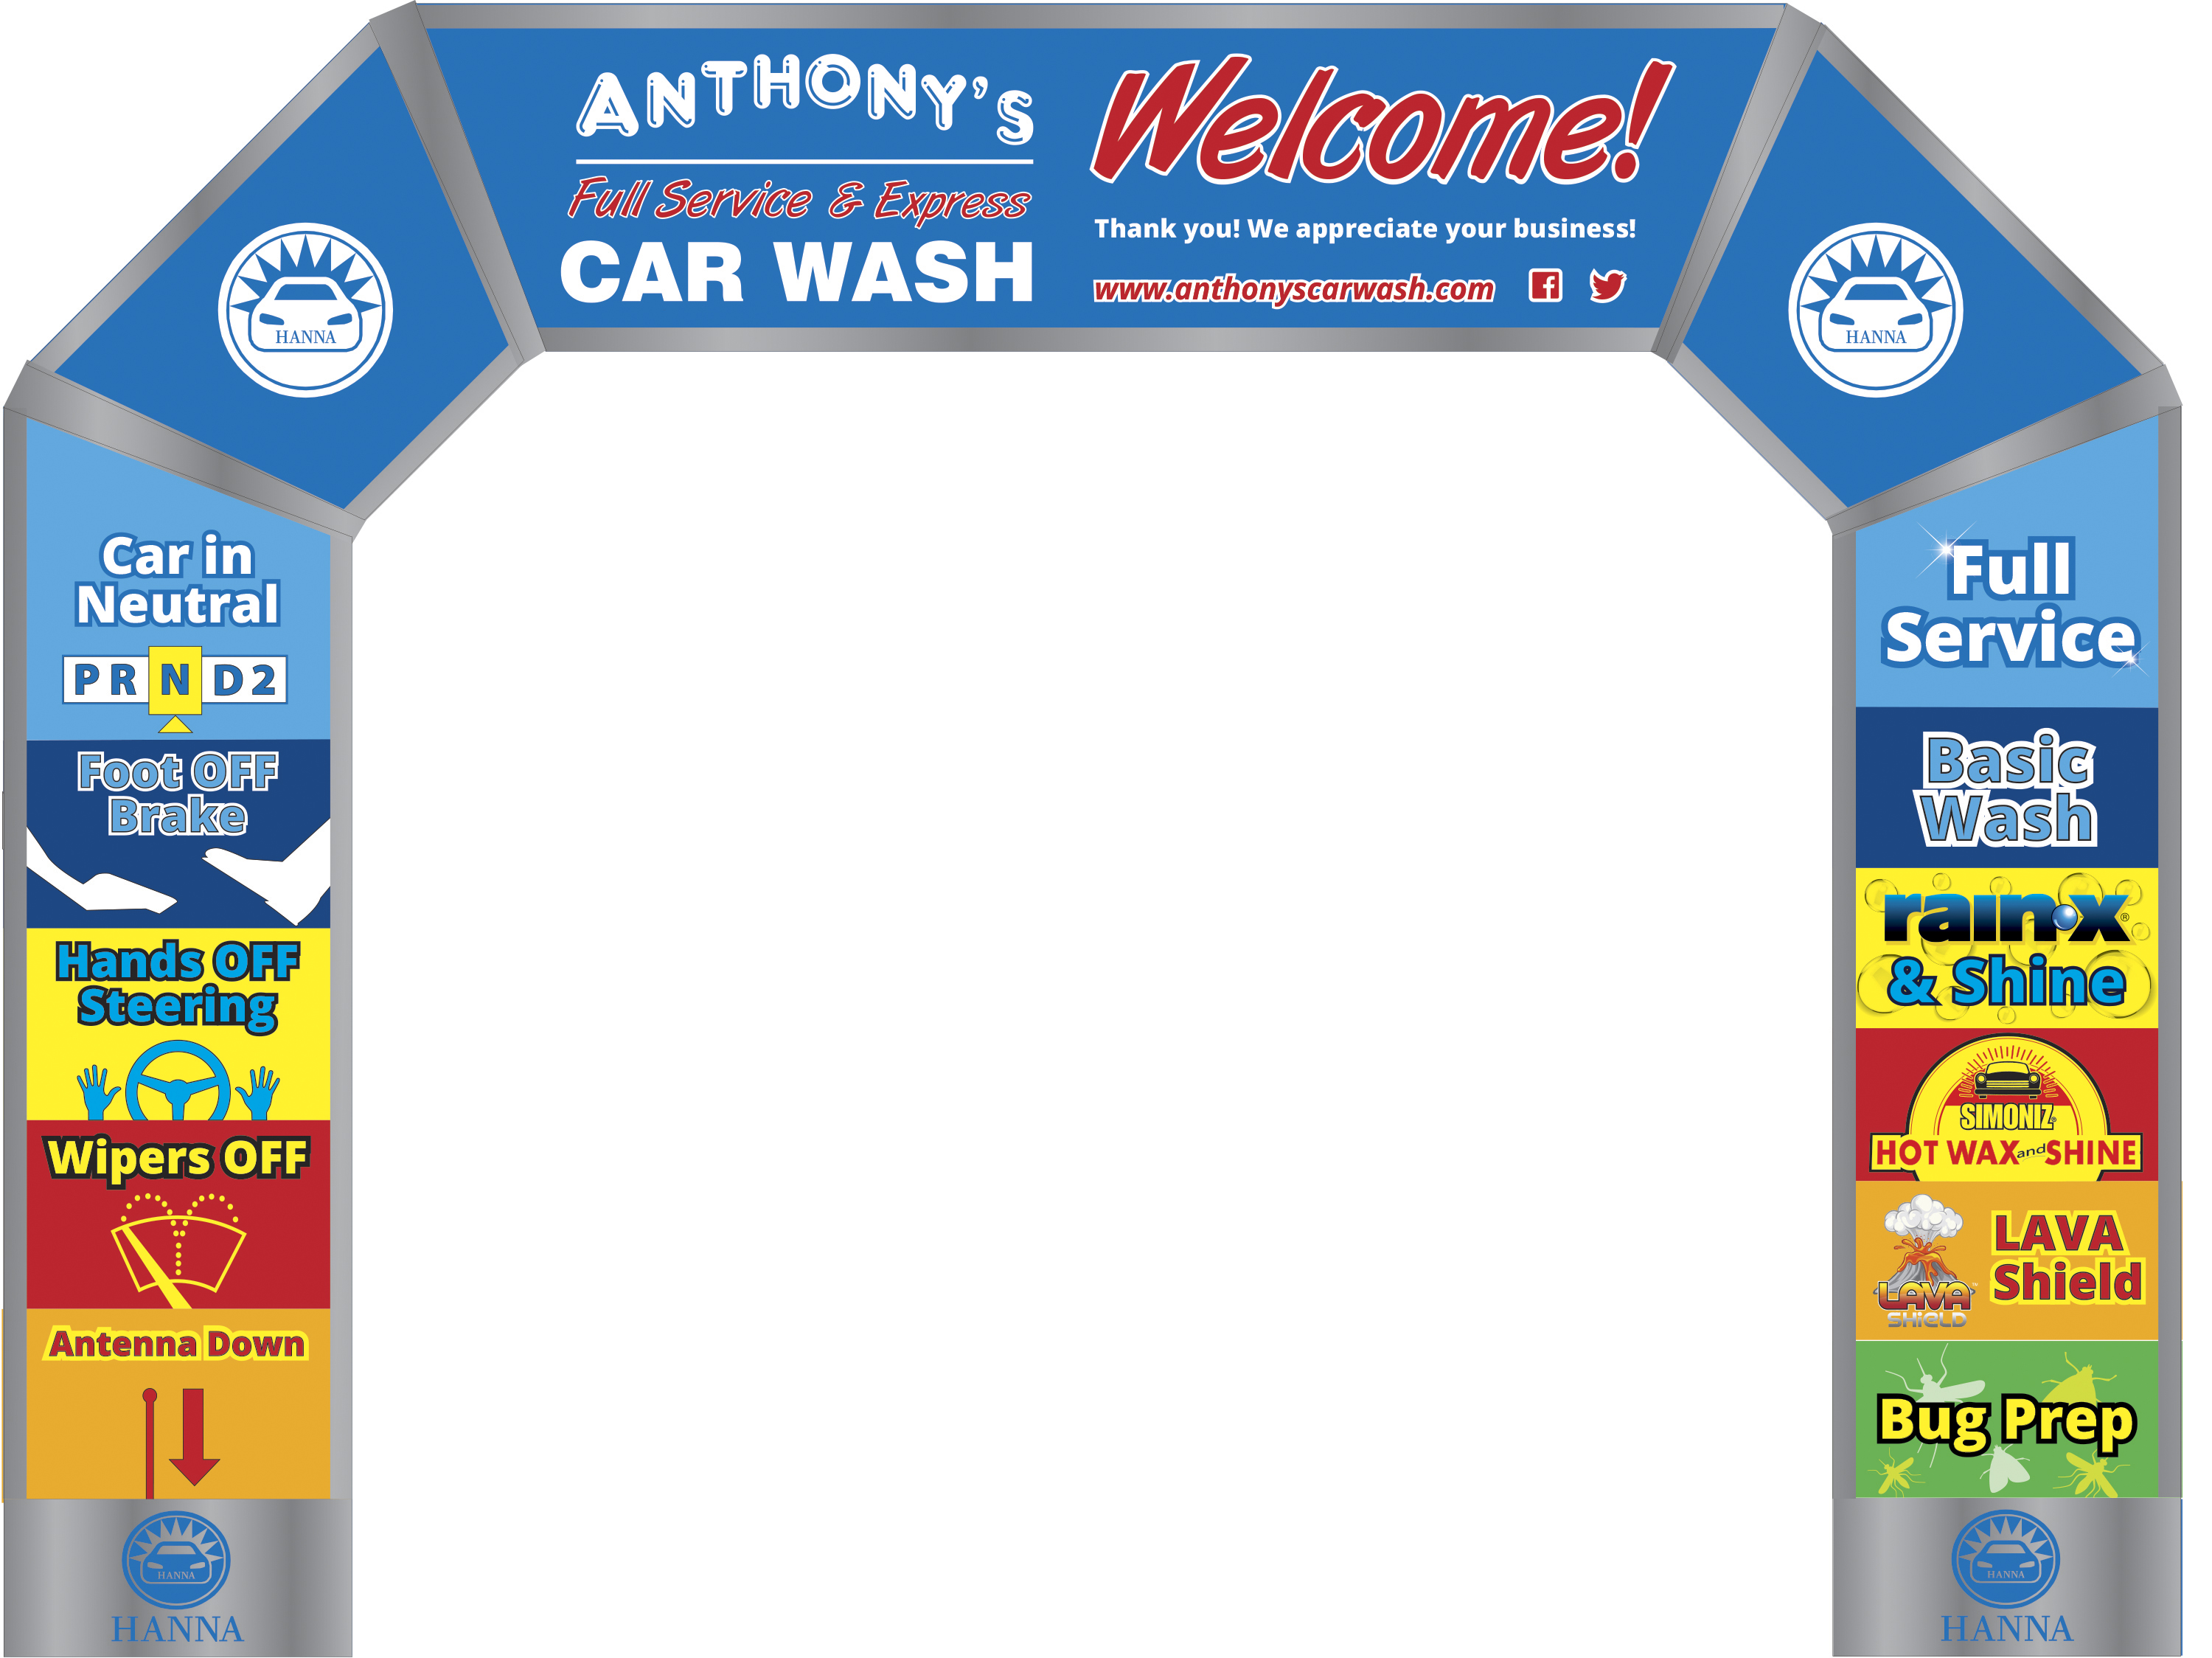 Car Wash Digital Signage